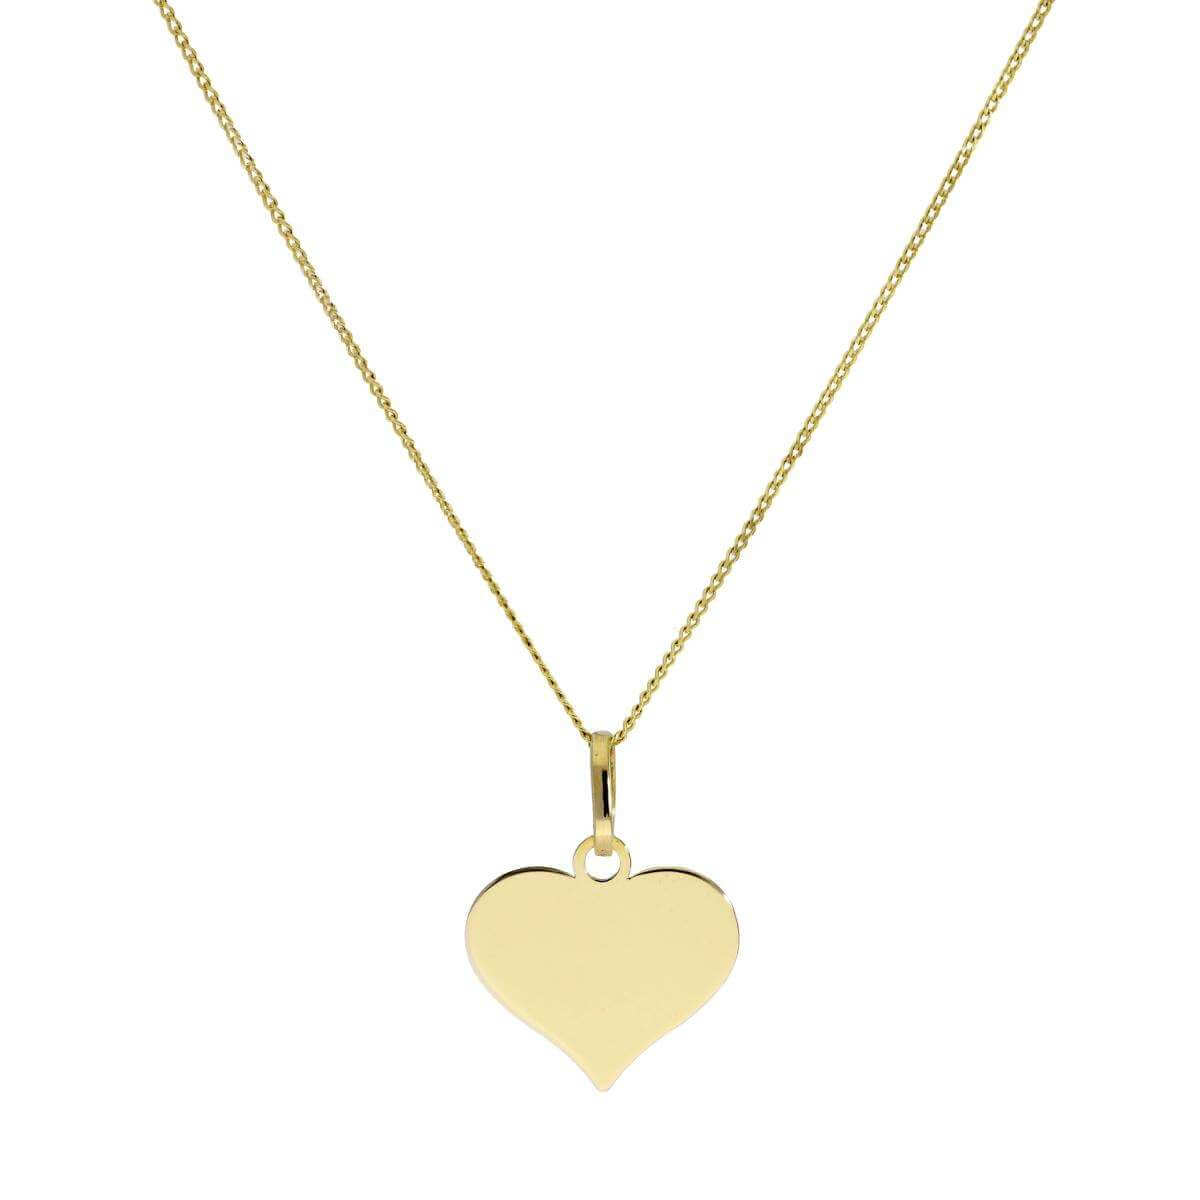 9ct Gold Engravable Heart Pendant Necklace 16 - 20 Inches